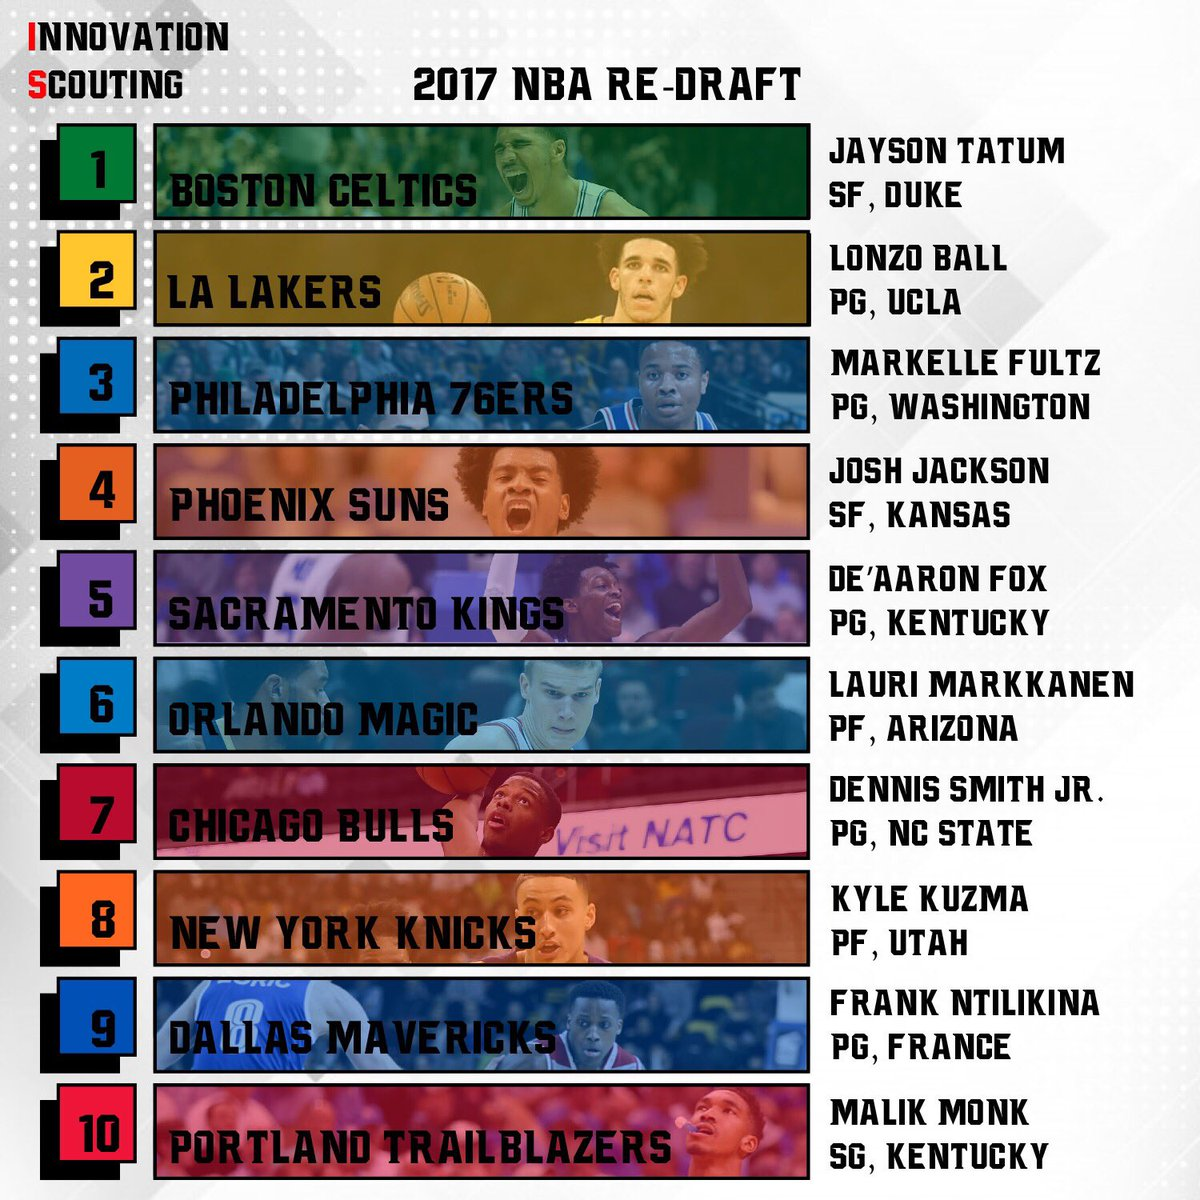 RT @InnScouting: This is how I think the 2017 NBA Draft should've went! Check out the whole draft on my Instagram! https://t.co/FE57DzAFLa